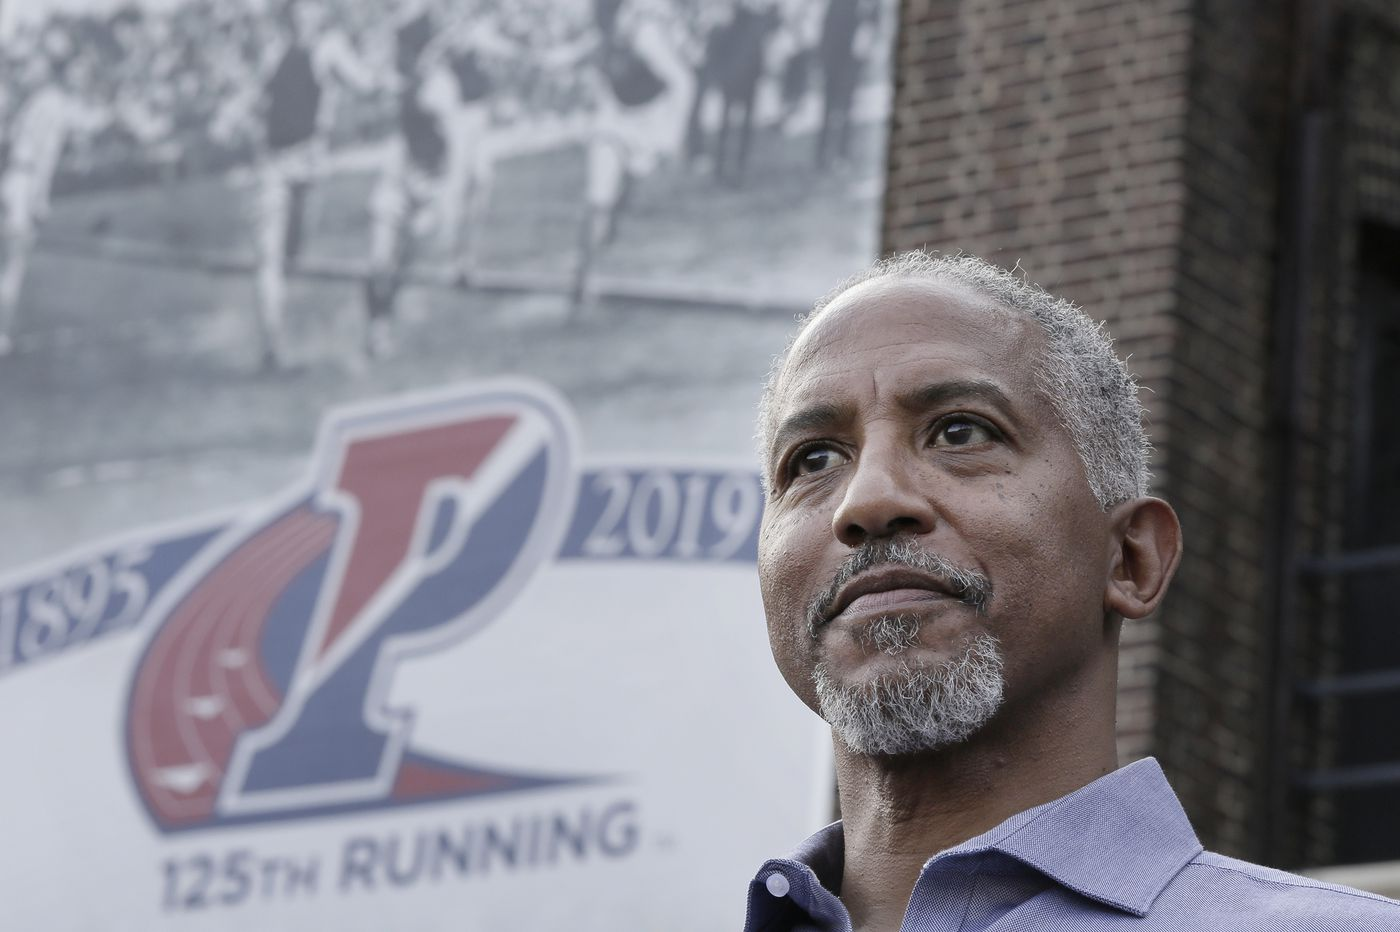 Forty years after his memorable race, Renaldo Nehemiah to return to Penn Relays